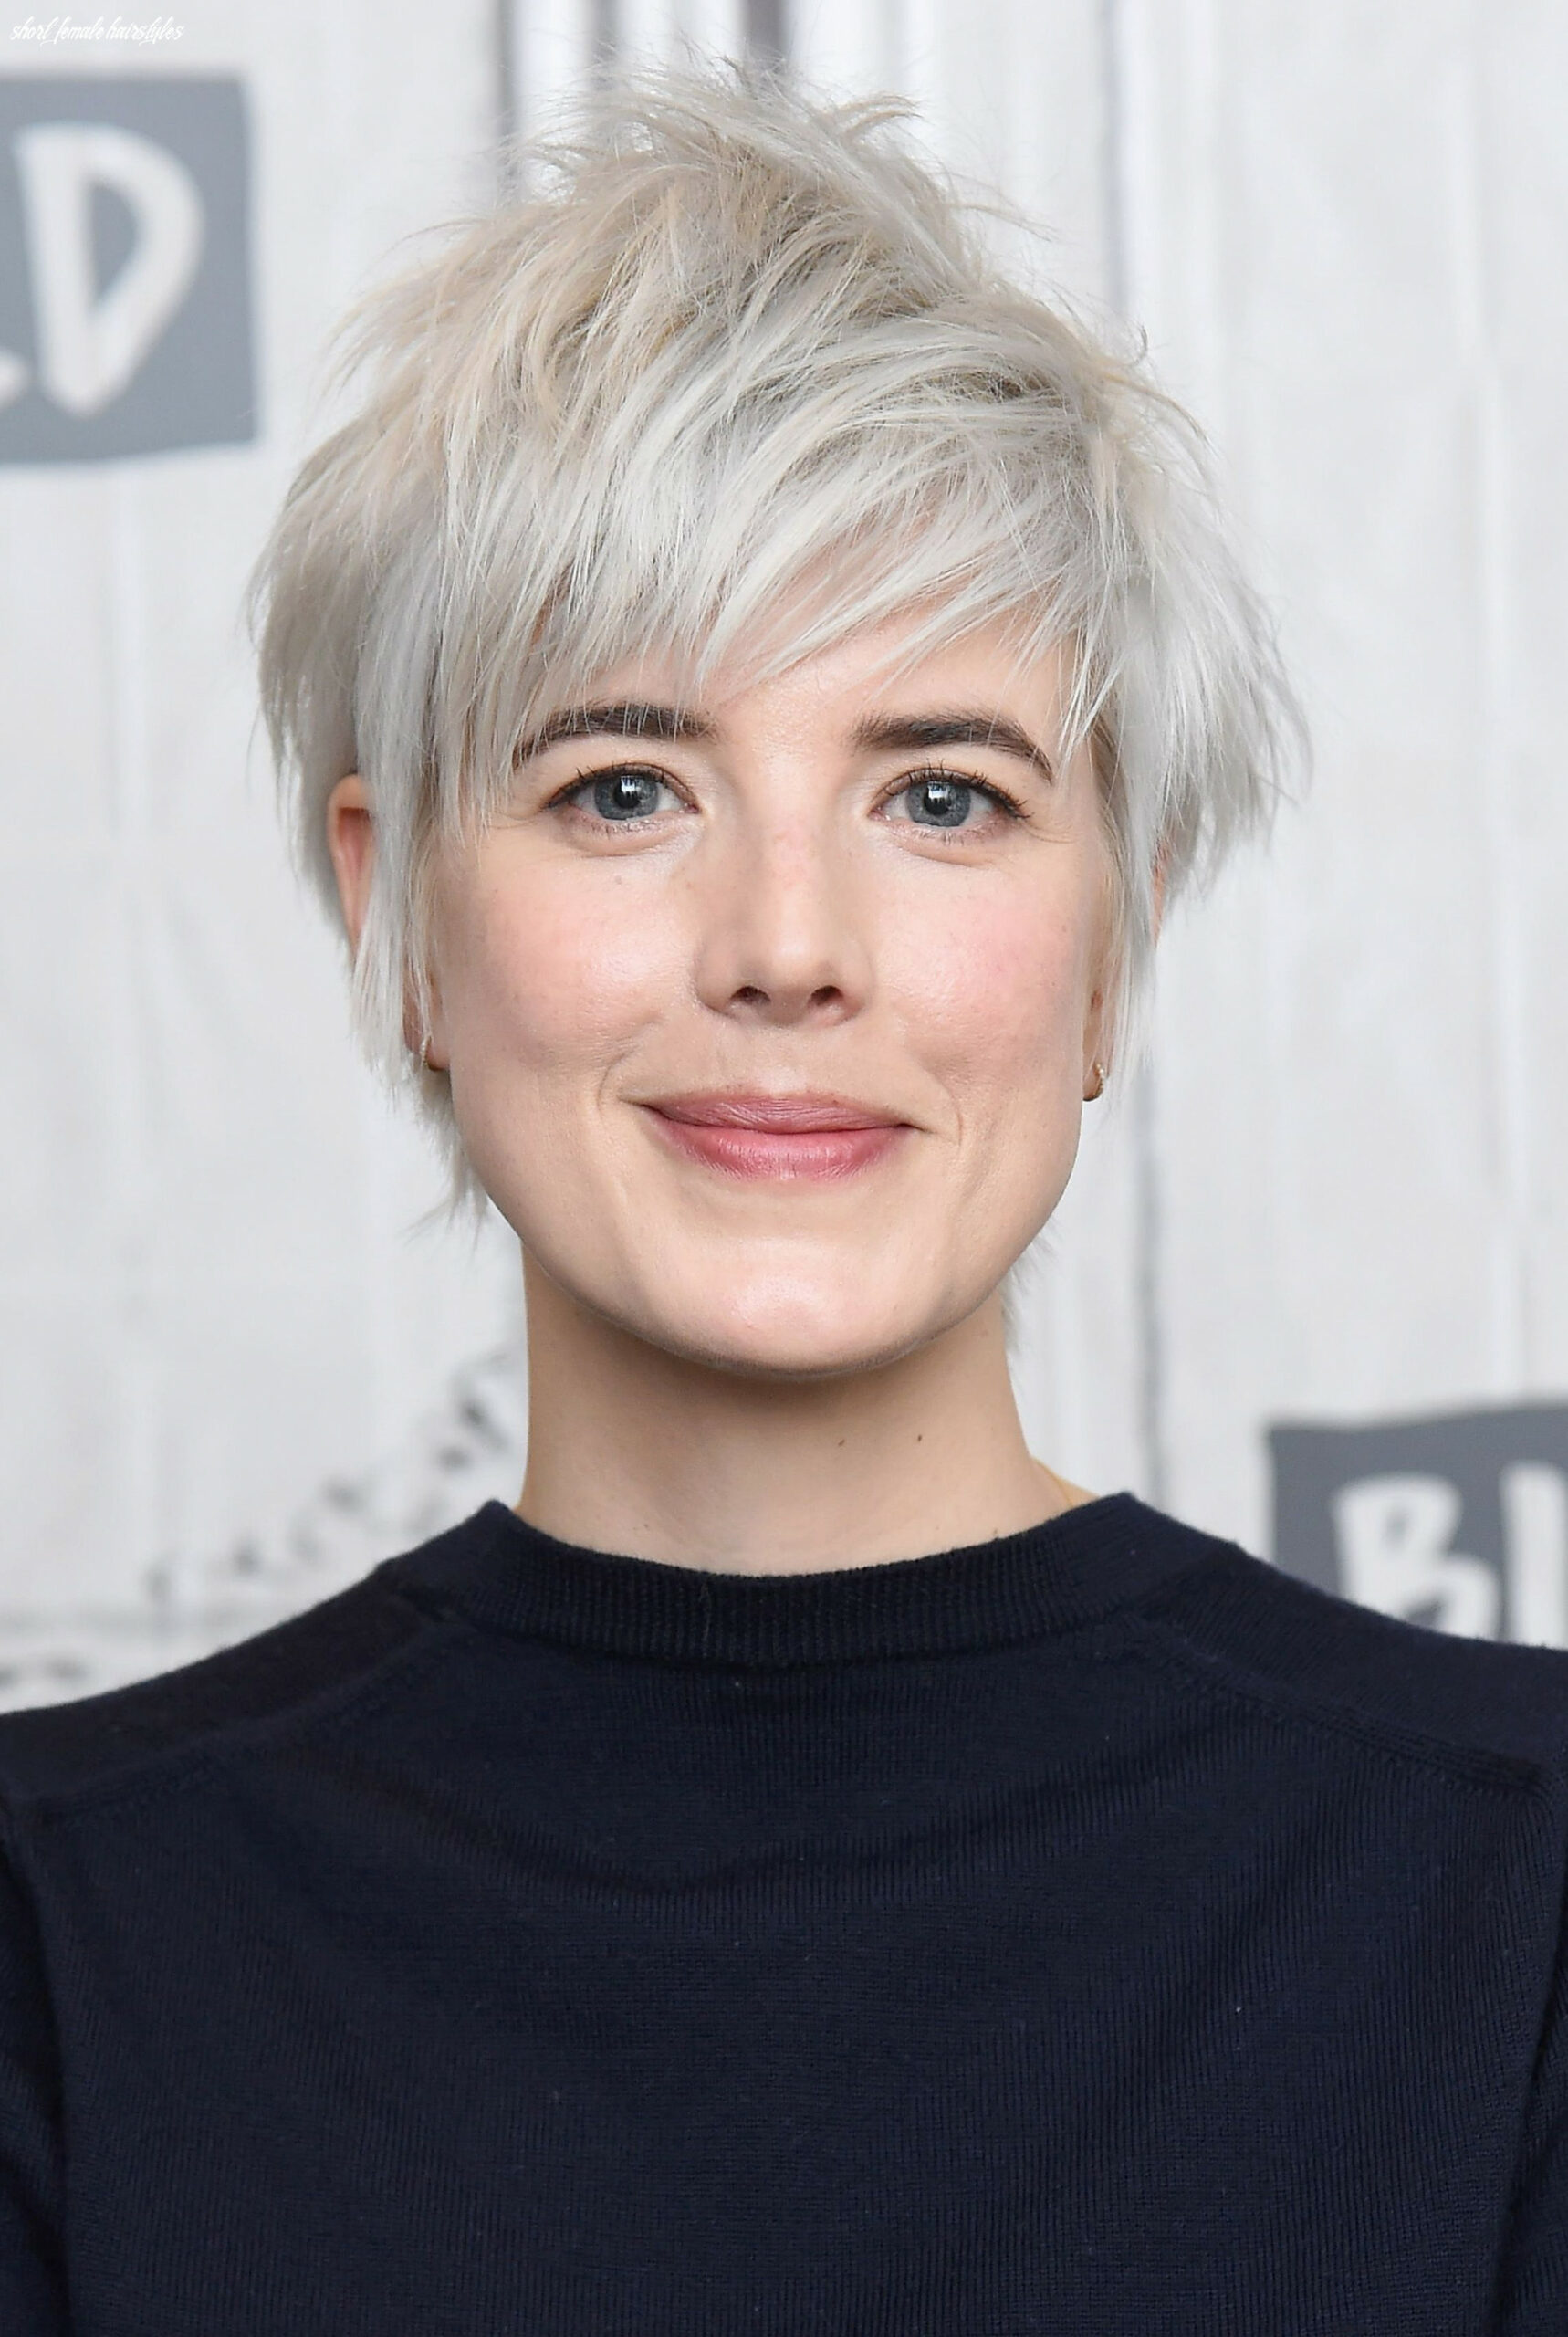 10 best short hairstyles, haircuts & short hair ideas for 10 short female hairstyles